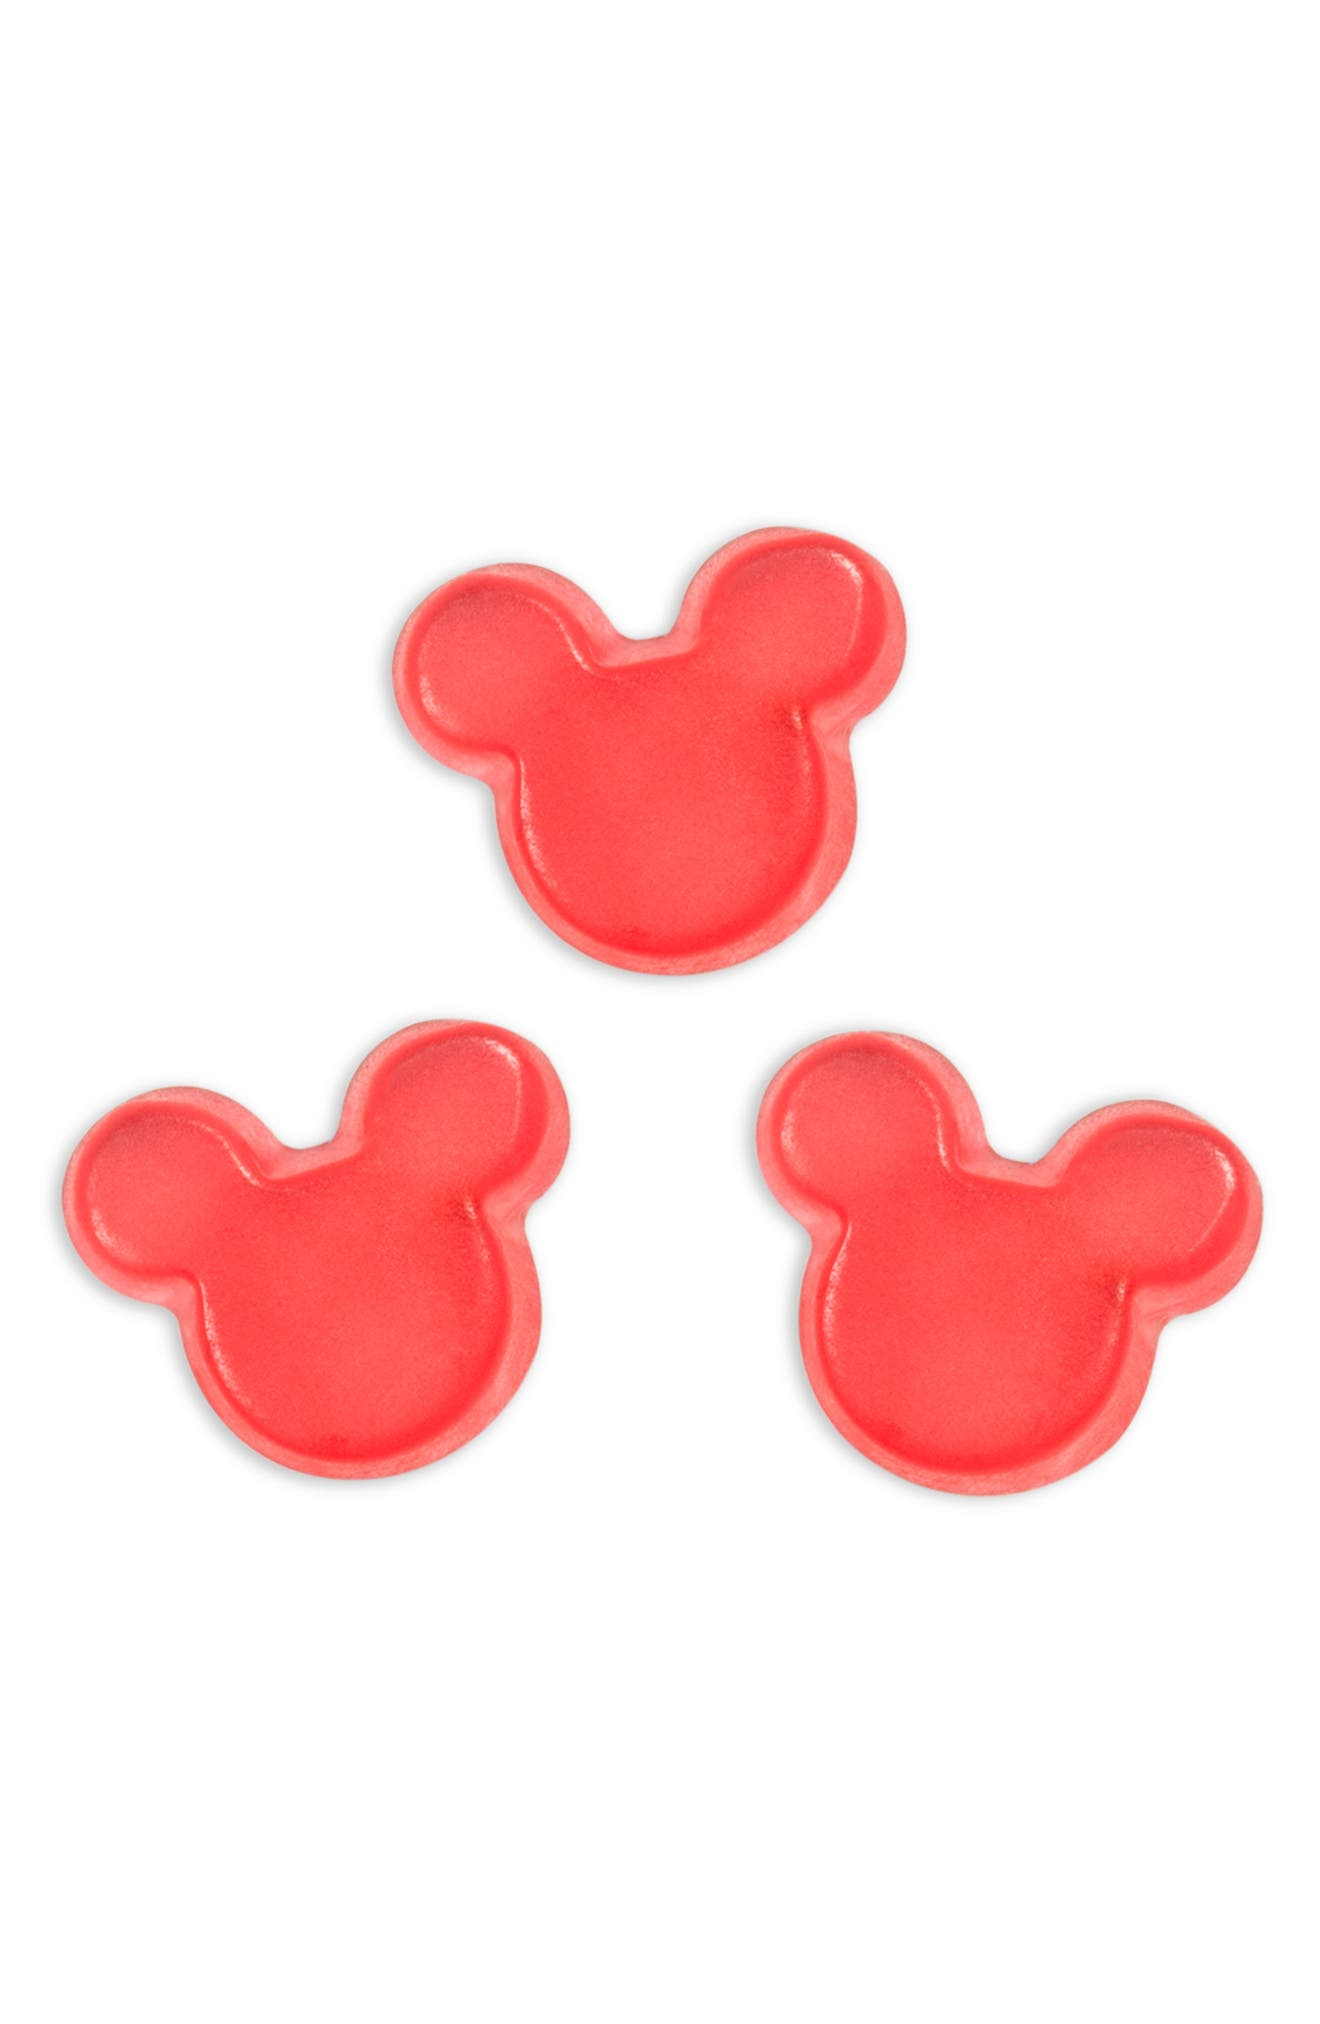 x Disney Mickey Ears 2-Piece Bento Box,                             Alternate thumbnail 6, color,                             WHITE